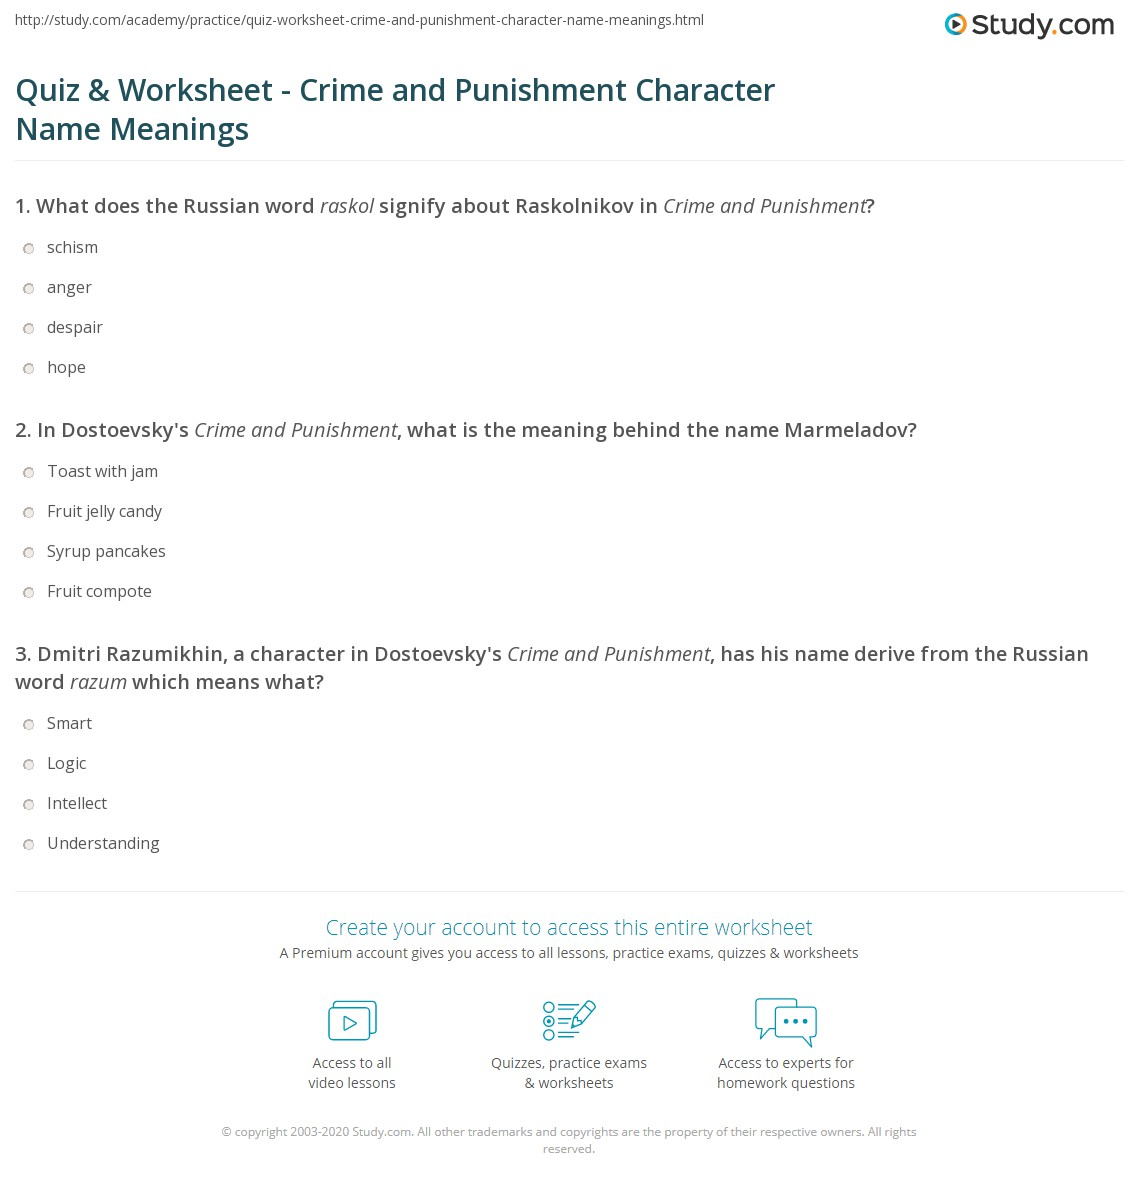 Quiz worksheet crime and punishment character name meanings in dostoevskys crime and punishment what is the meaning behind the name marmeladov 1betcityfo Images